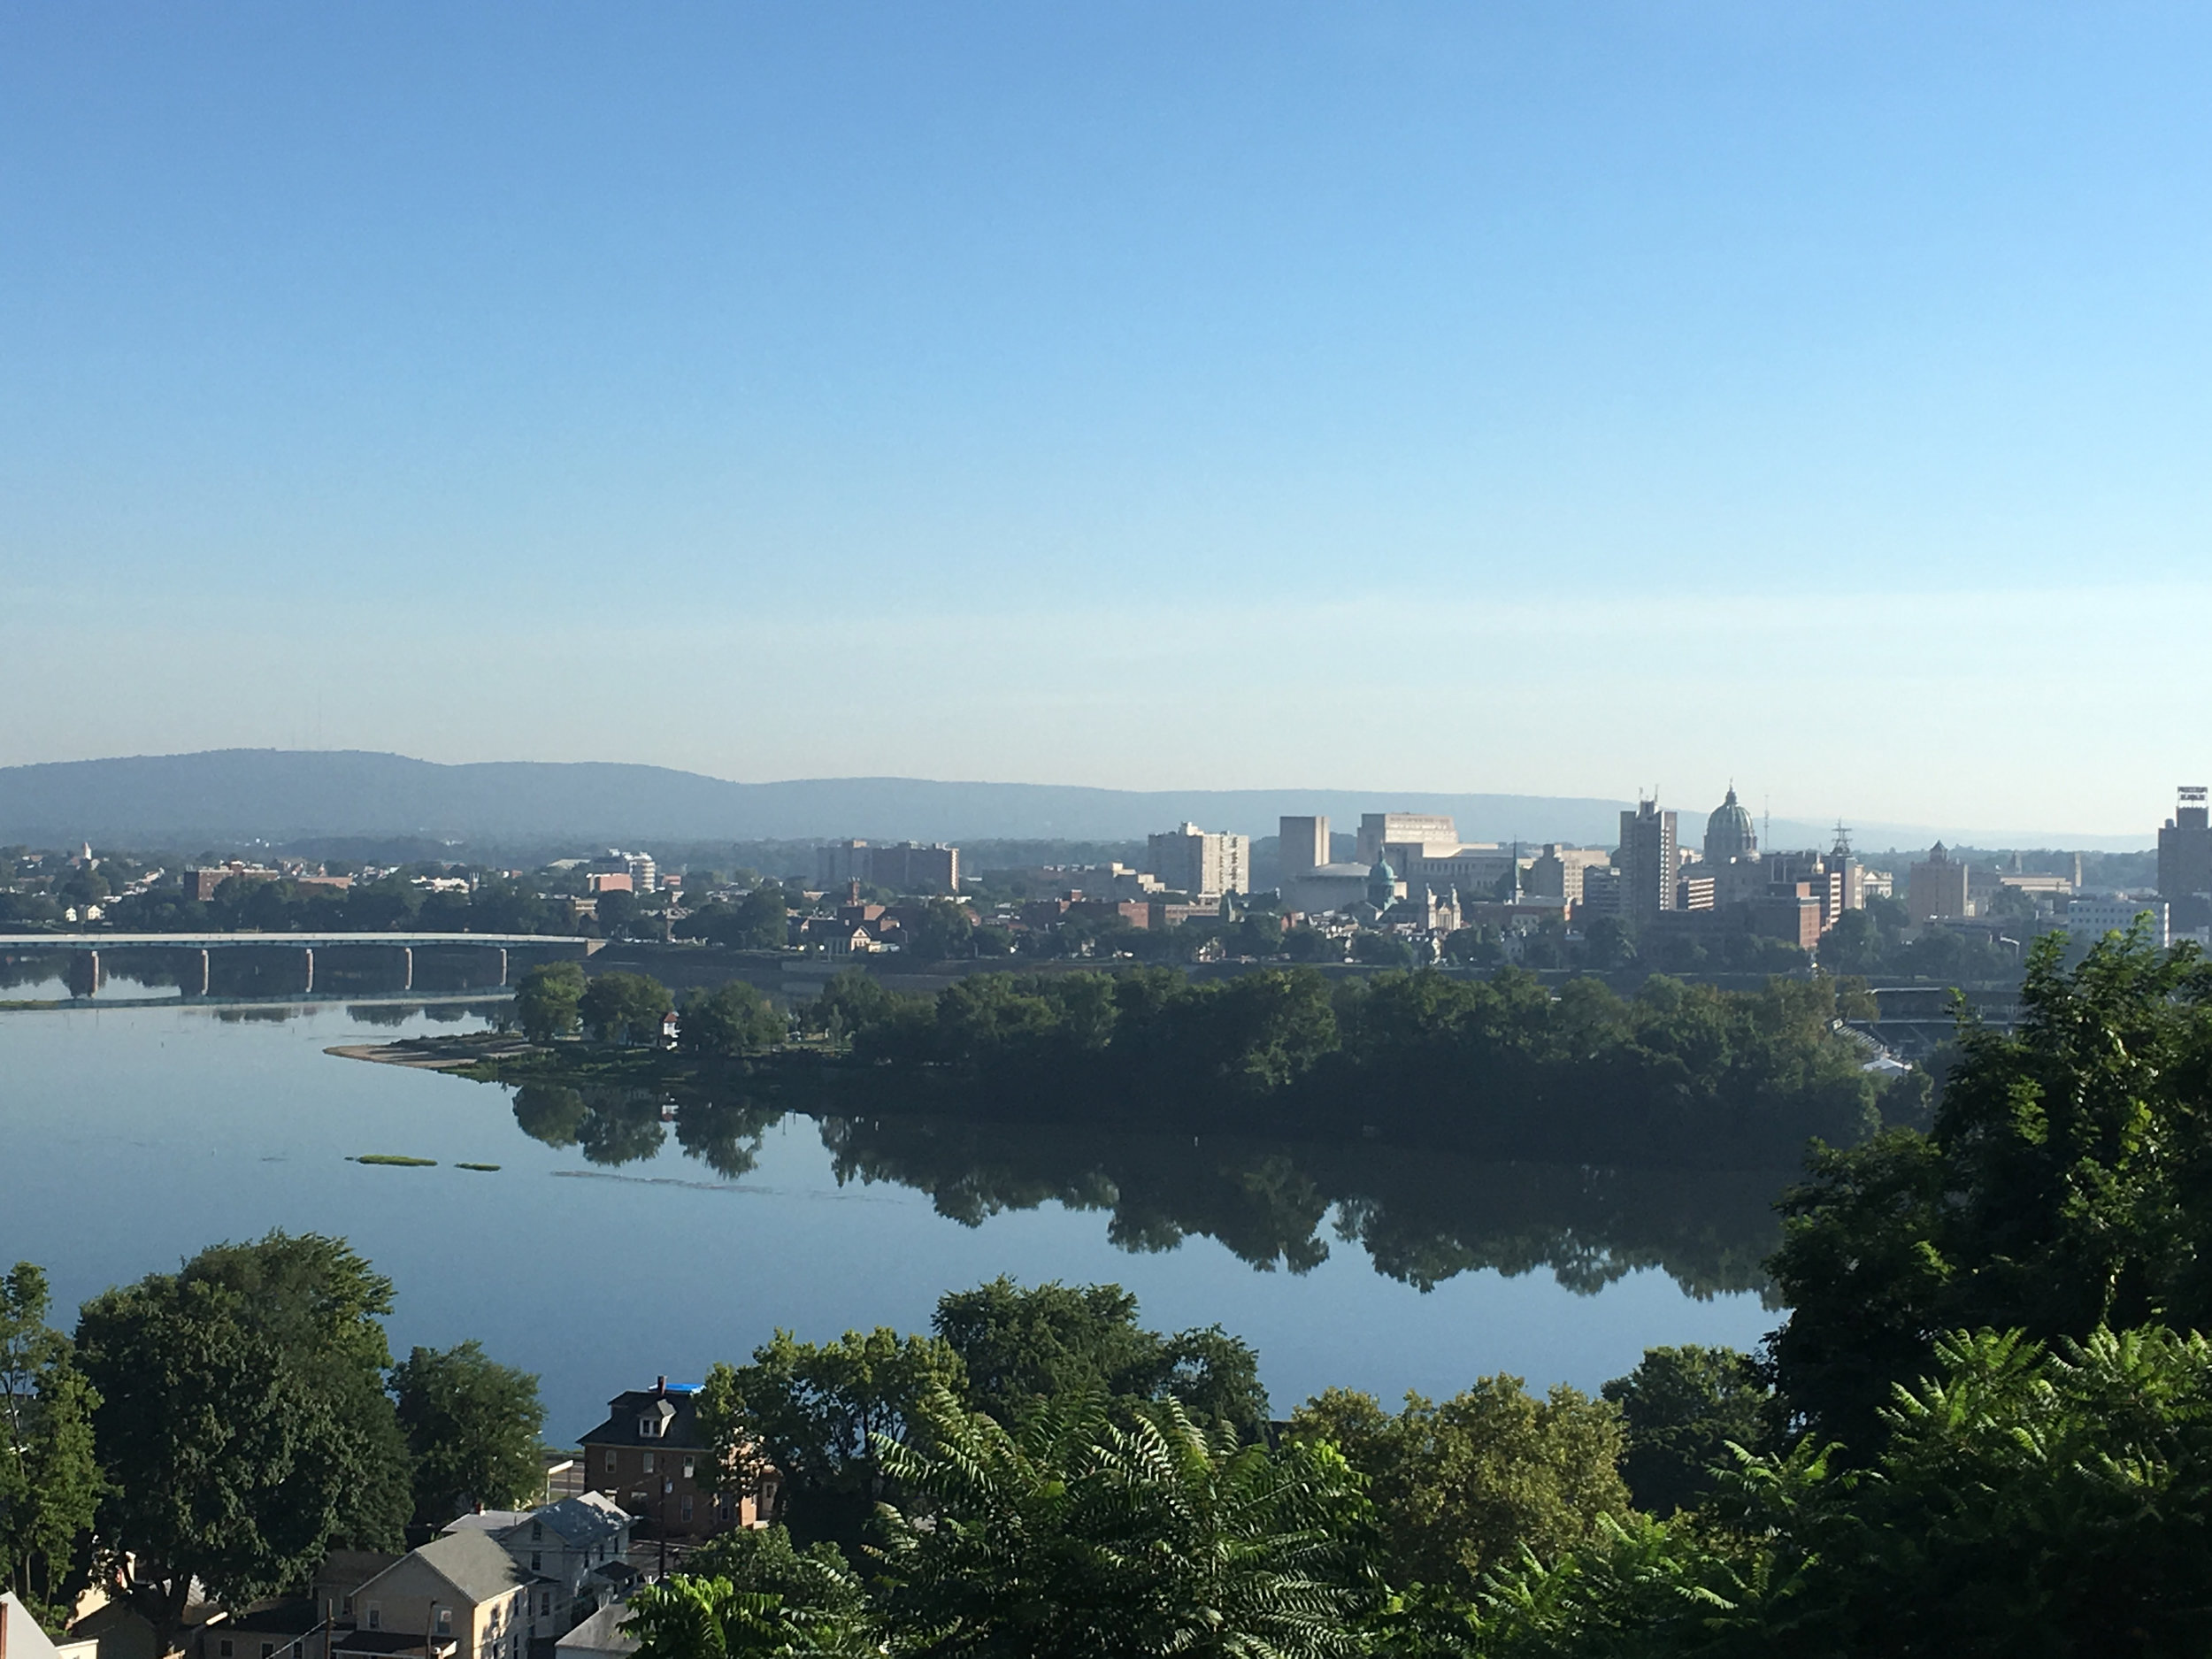 Harrisburg and the Susquehanna River from above Negley Park in Lemoyne